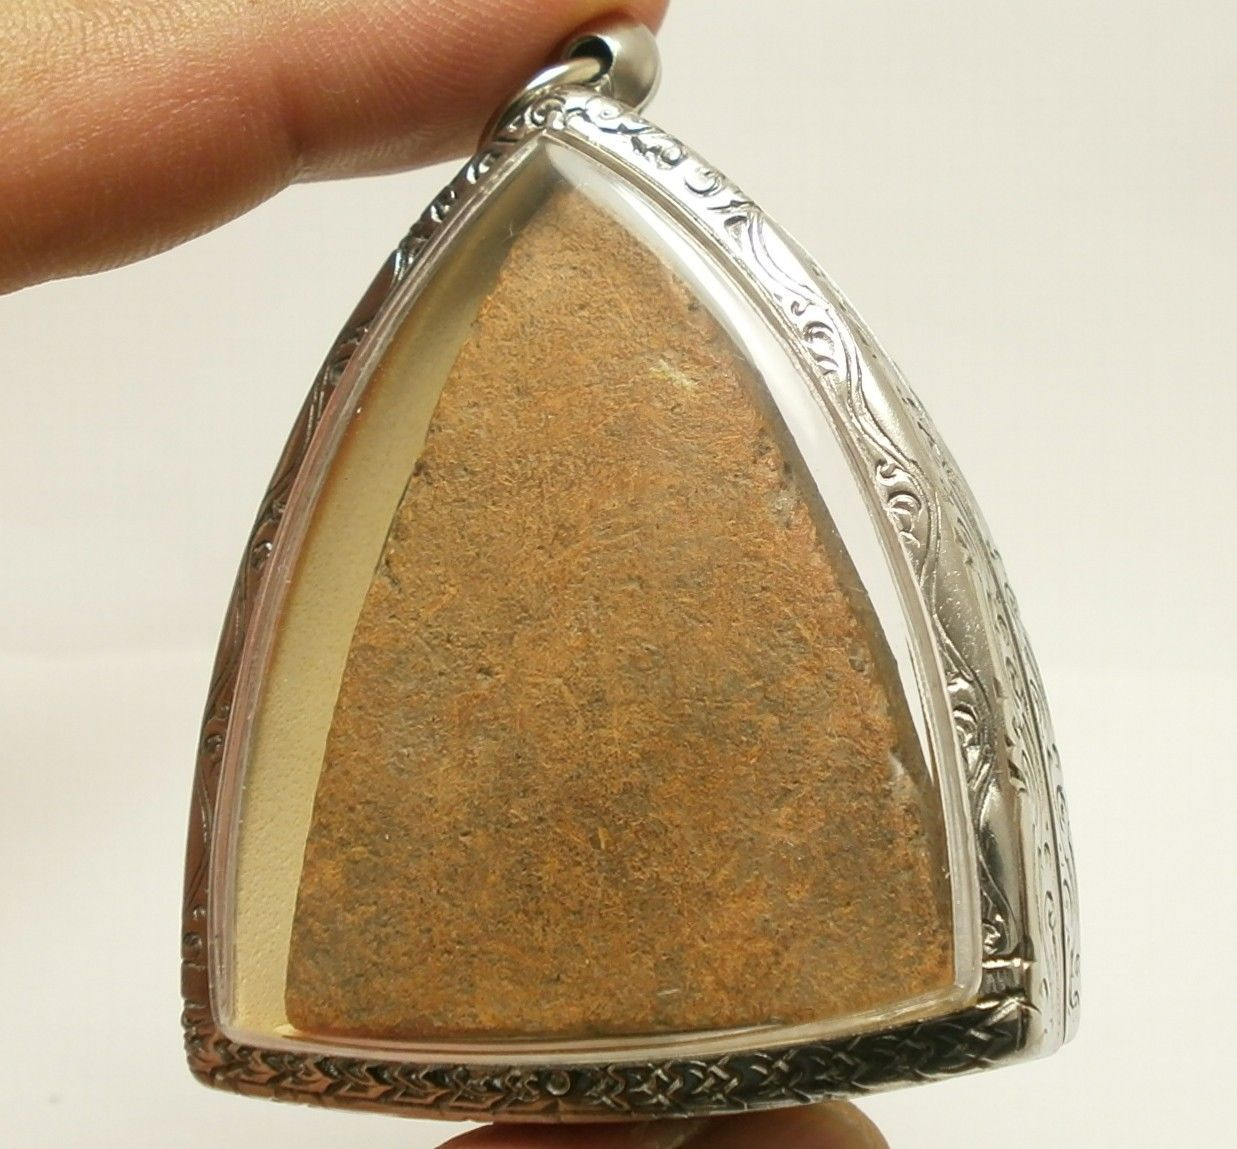 LORD BUDDHA TRIPLE BLESSING AMULET THAI REAL POWERFUL SUCCESS LUCKY RICH PENDANT image 5